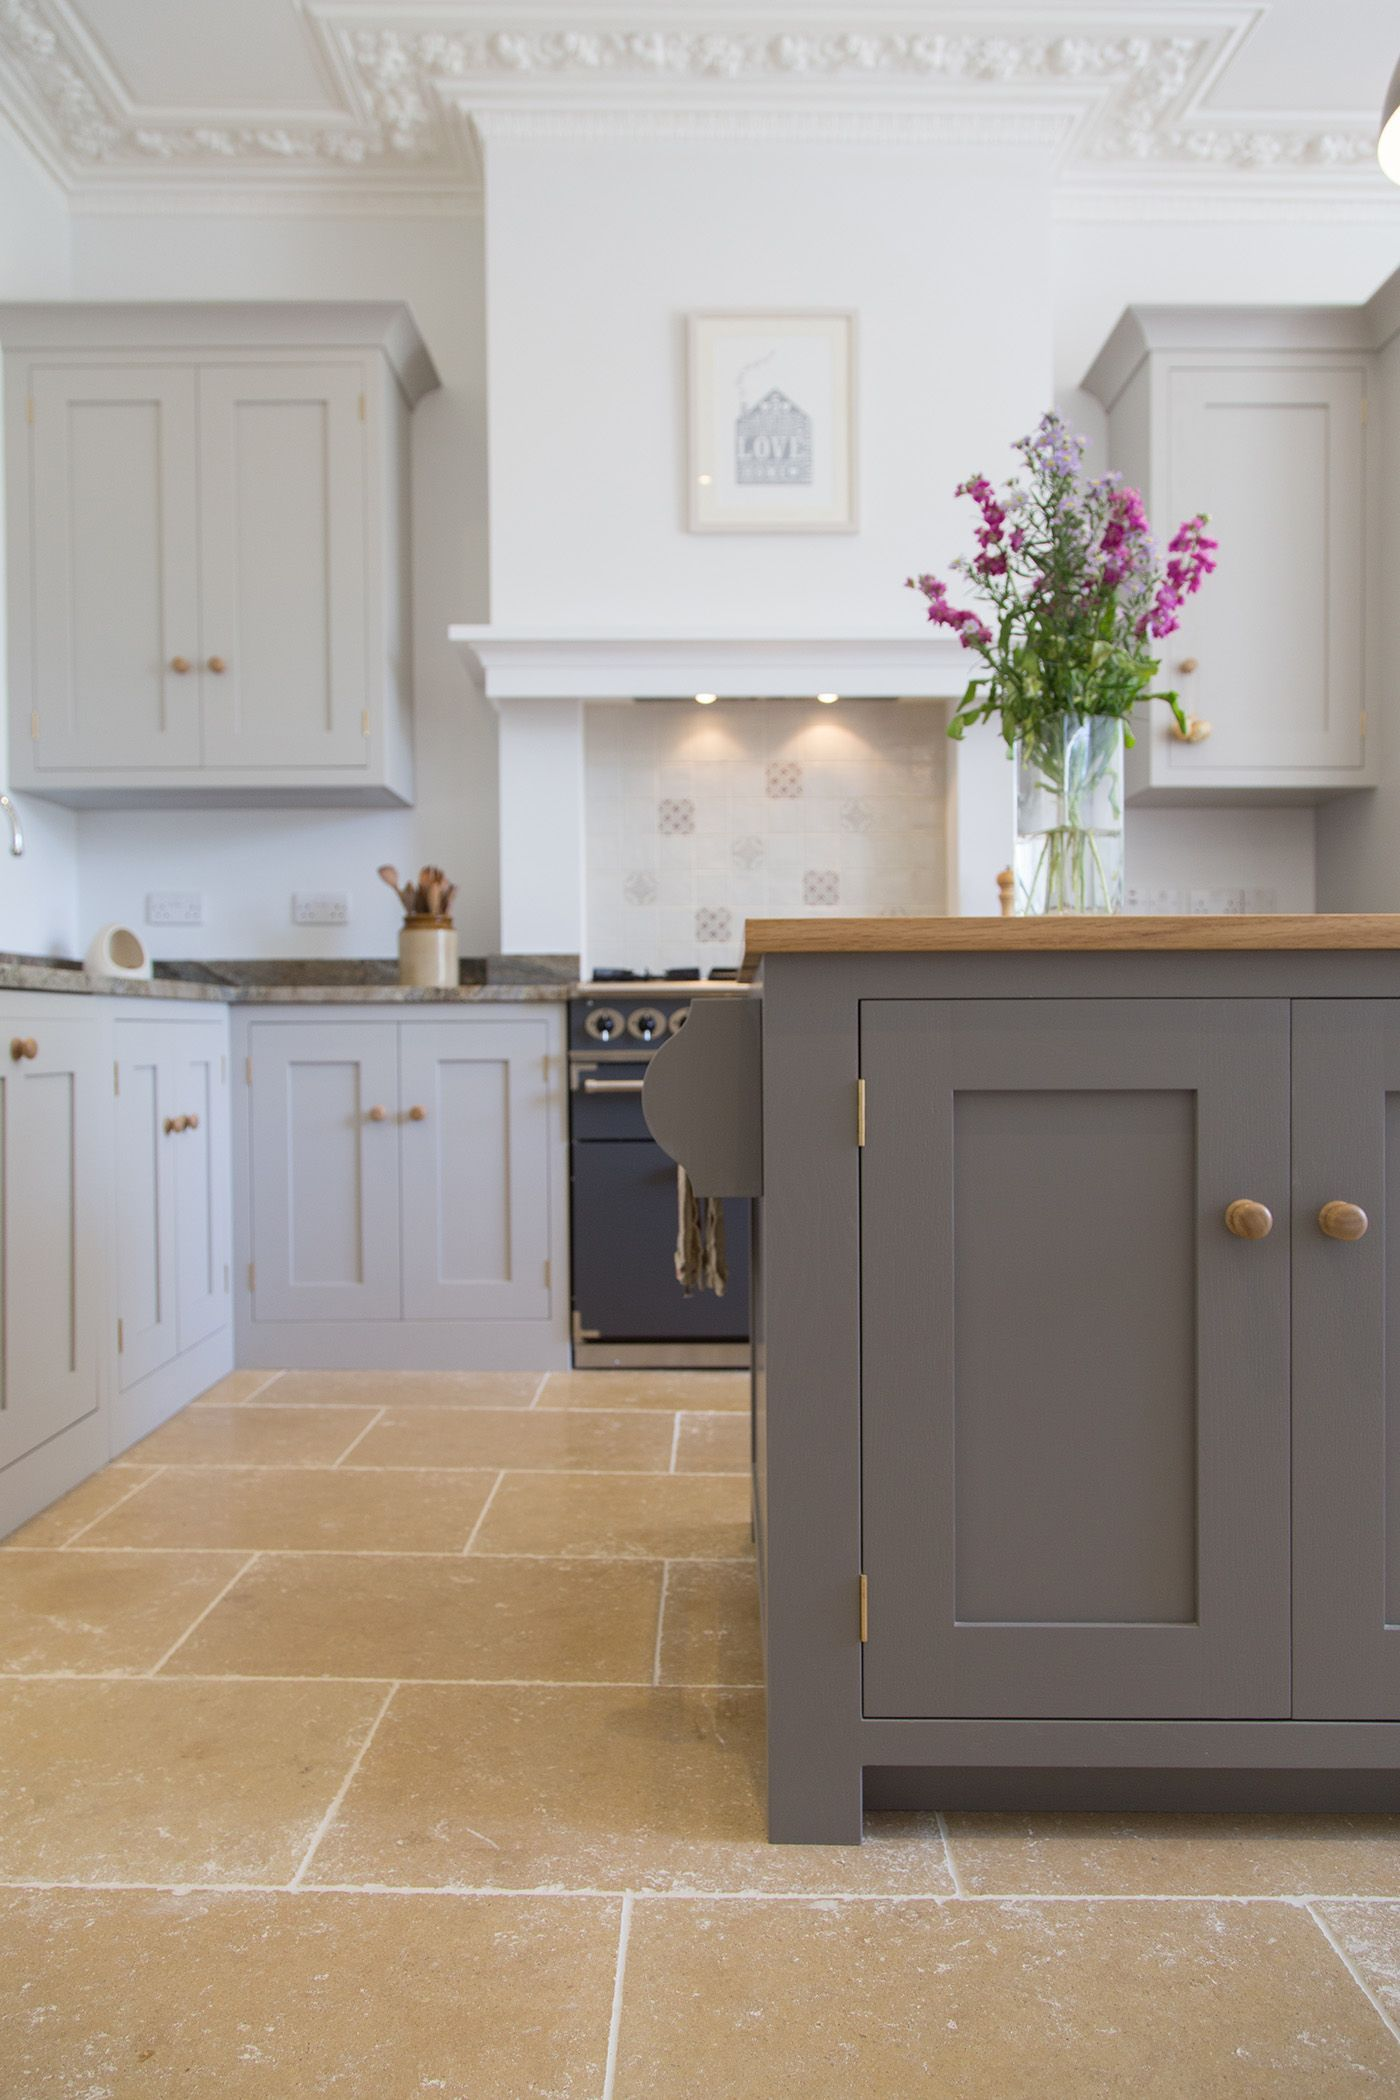 Cabinet color lowers in kitchen or FR bathroom Farrow and Ball